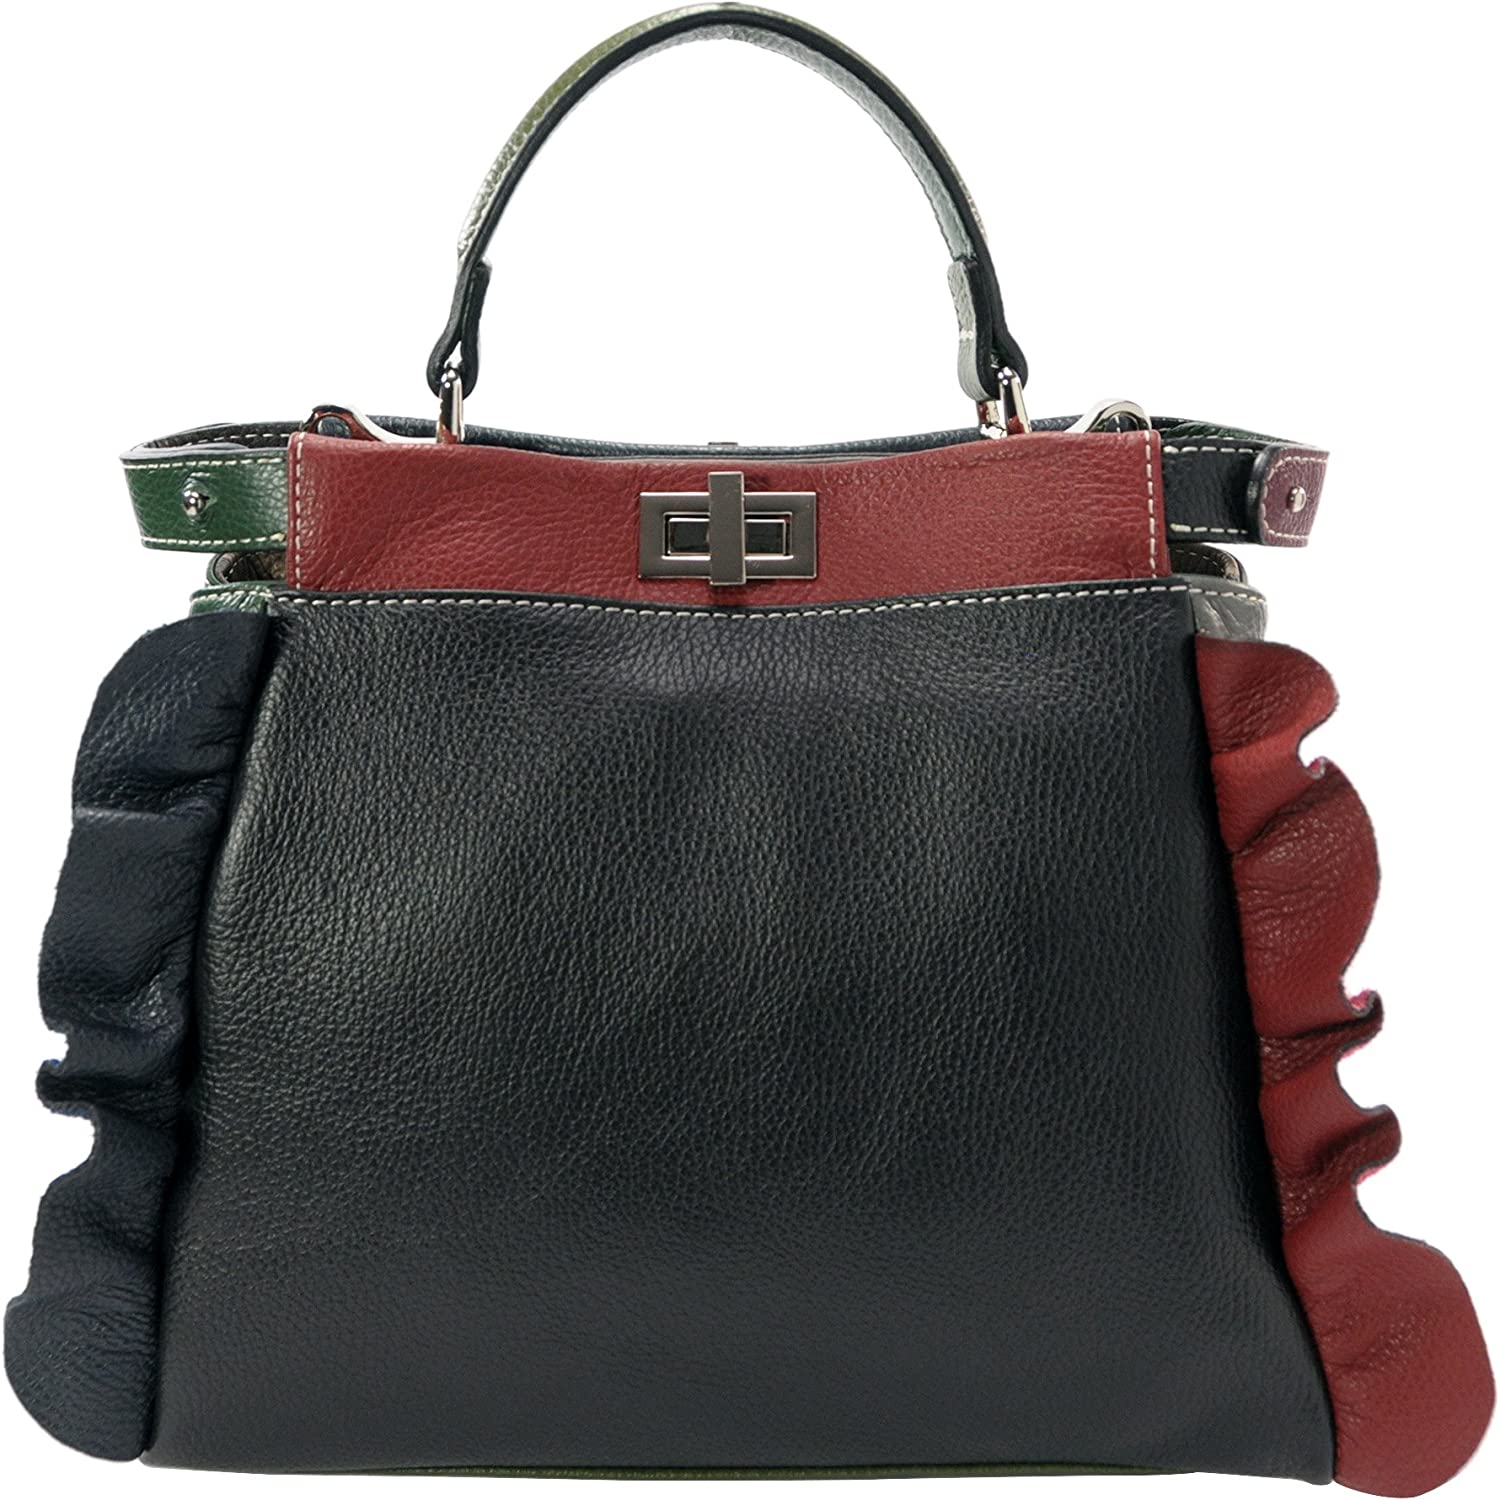 Alice.Woman's Handmade multicolour bag with shoulder strap.Col.BLACK WINE. Real leather. Made in  in Florence. Metal zippers with two pockets.size.cm.W.26-30 H.27 D.13. The shoulder strap is removable and is 110 cm long.Delivery from  Florence a